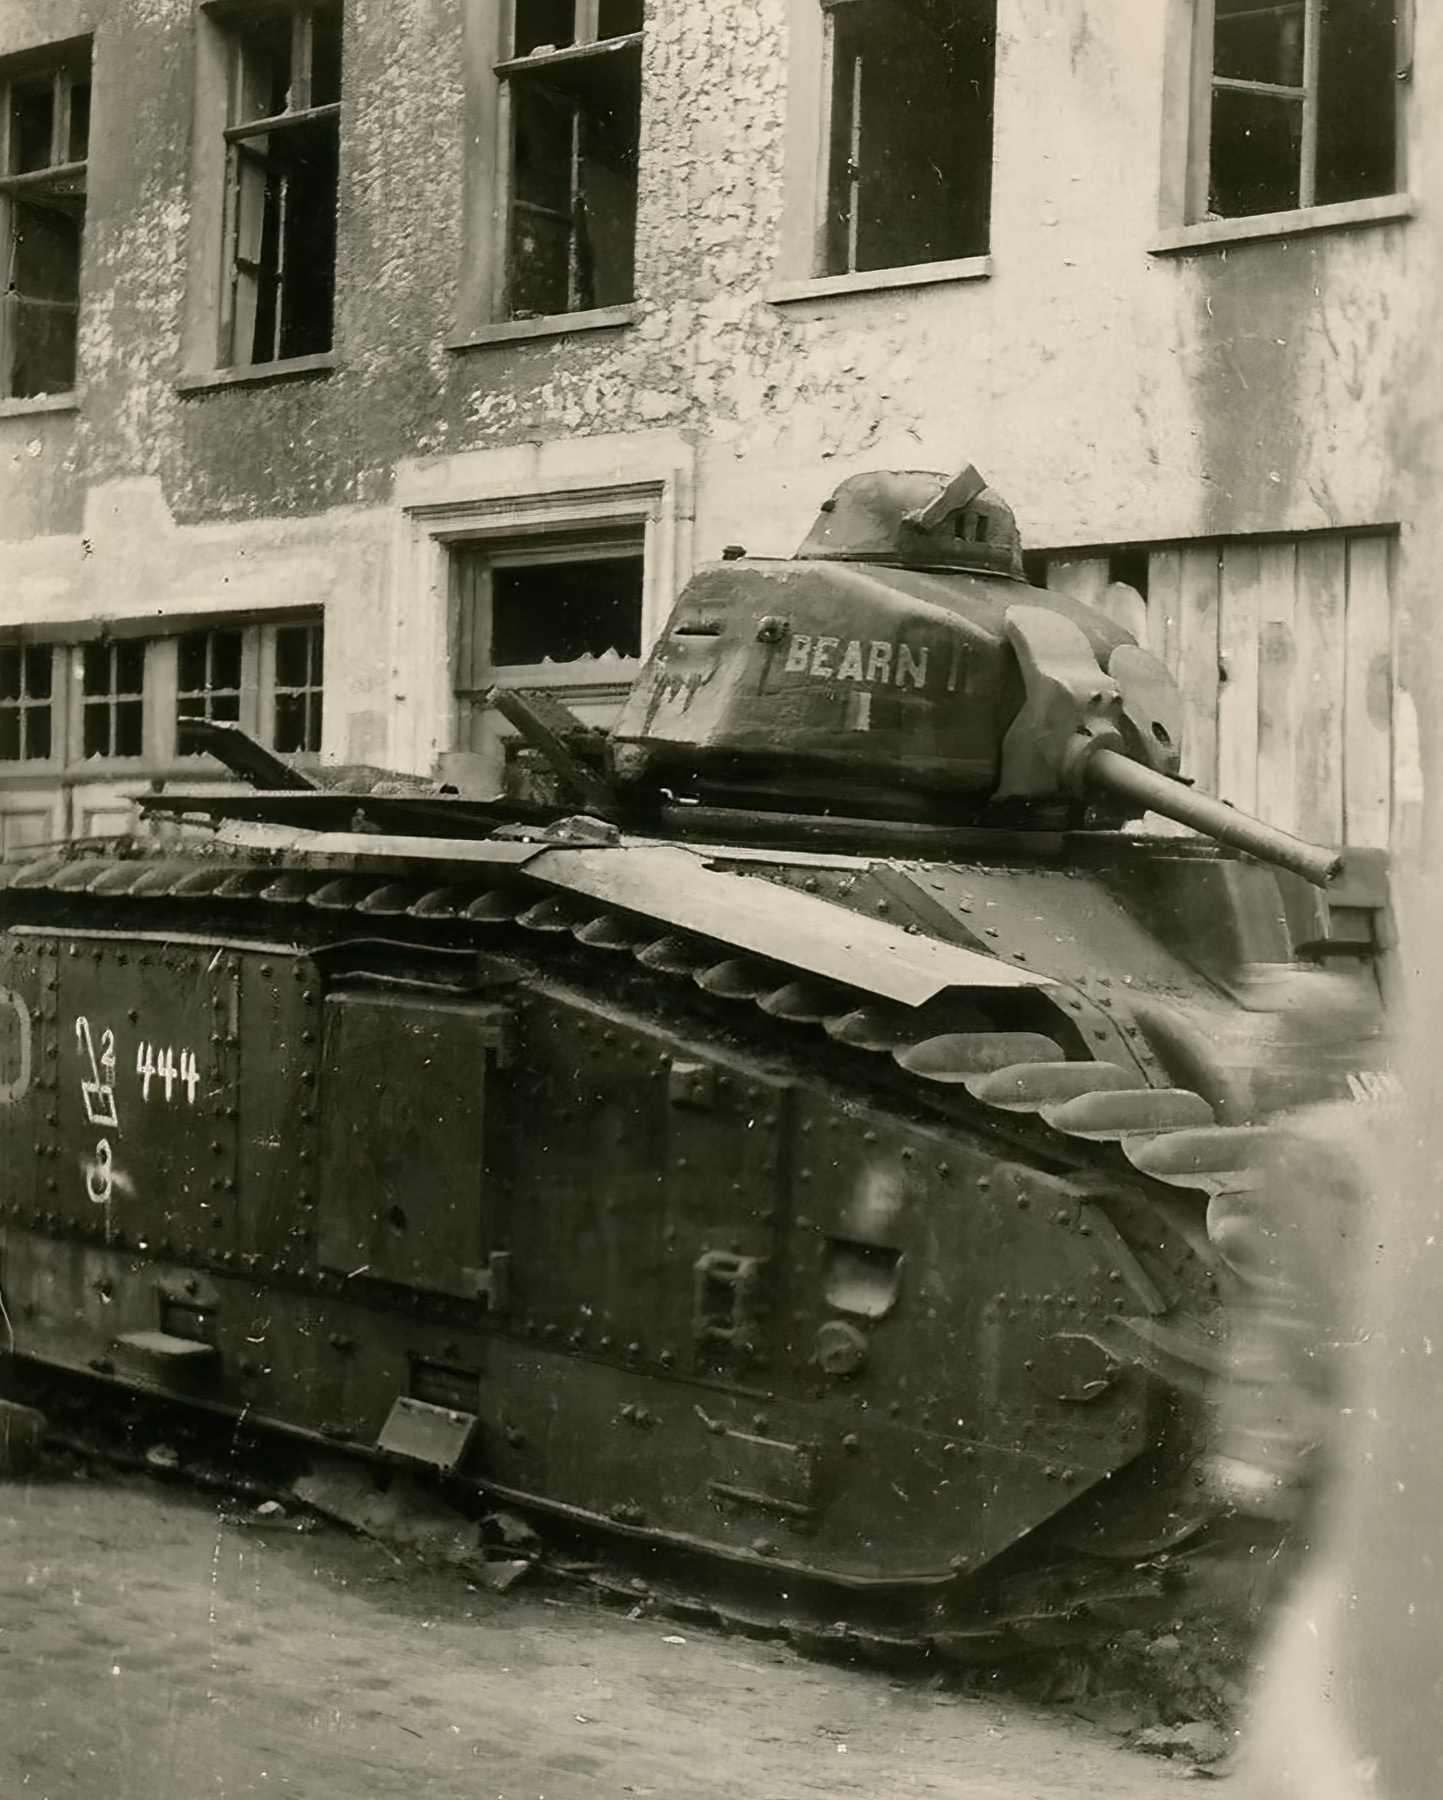 French Army Renault Char B1 named Bearn II abandoned during the battle of France 1940 ebay 01